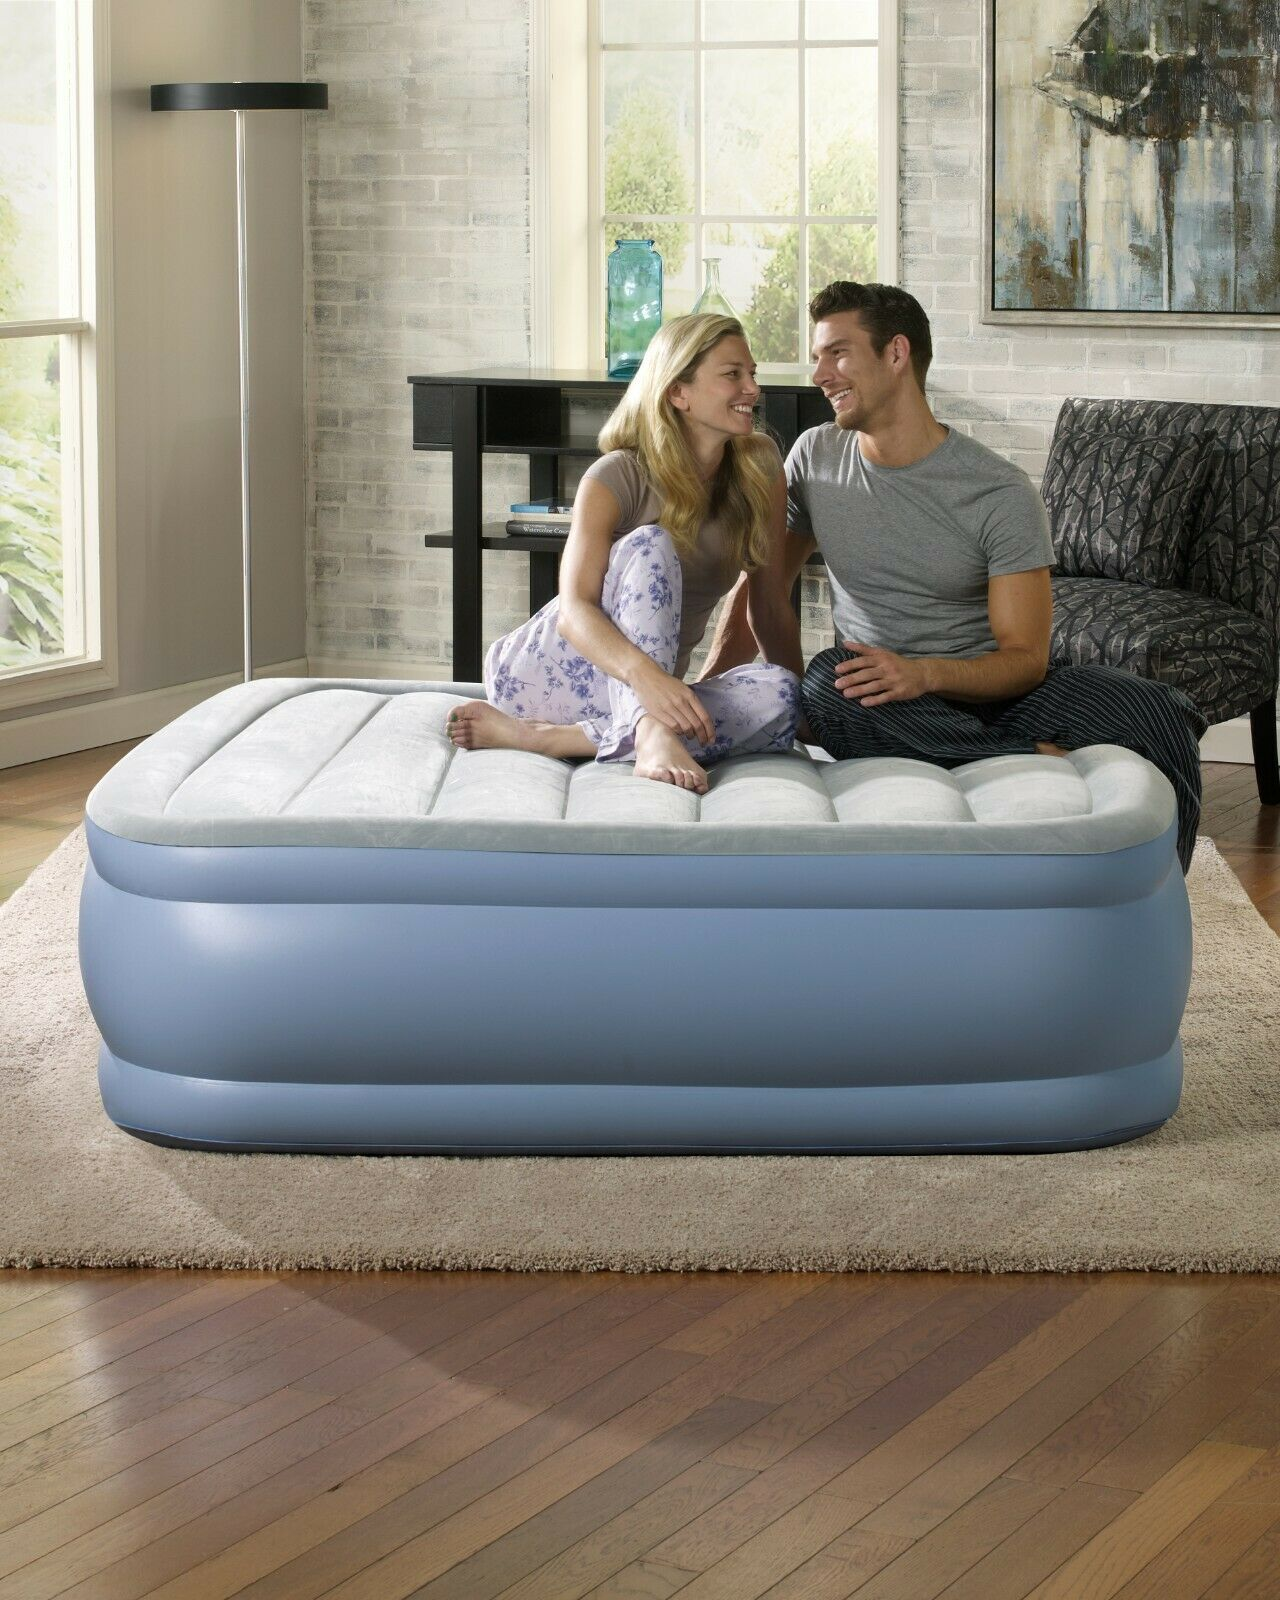 Portable Air Bed Comfortable Camping Sleeping Adjustable Inf